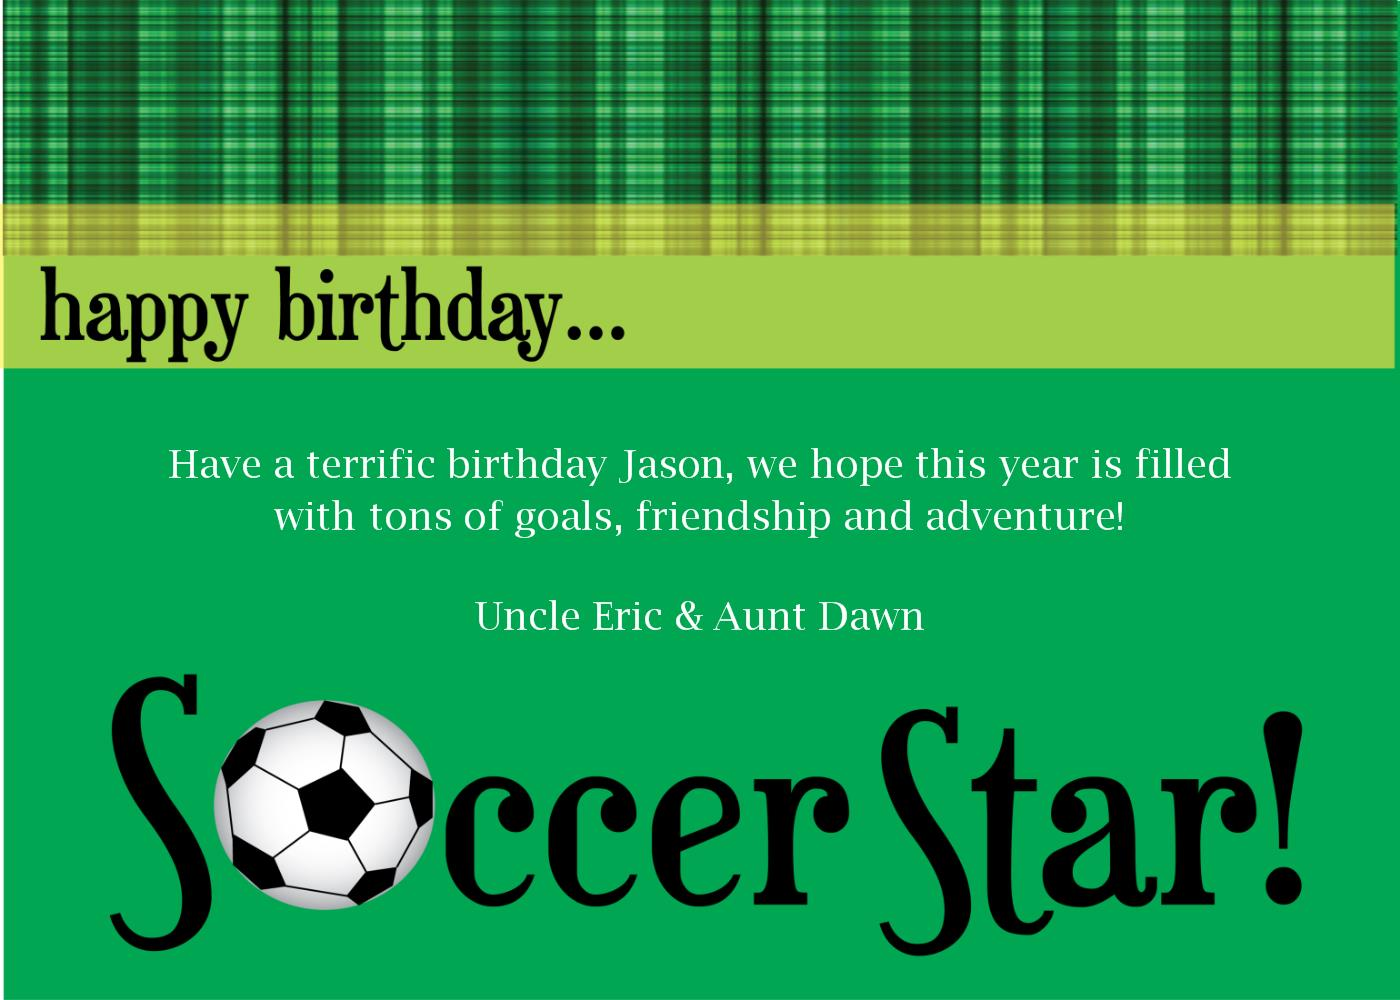 football birthday card quotes ; extraordinary-quotes-awesome-soccer-birthday-cards-green-background-color-jason-party-hope-this-year-is-filled-with-tons-of-goals